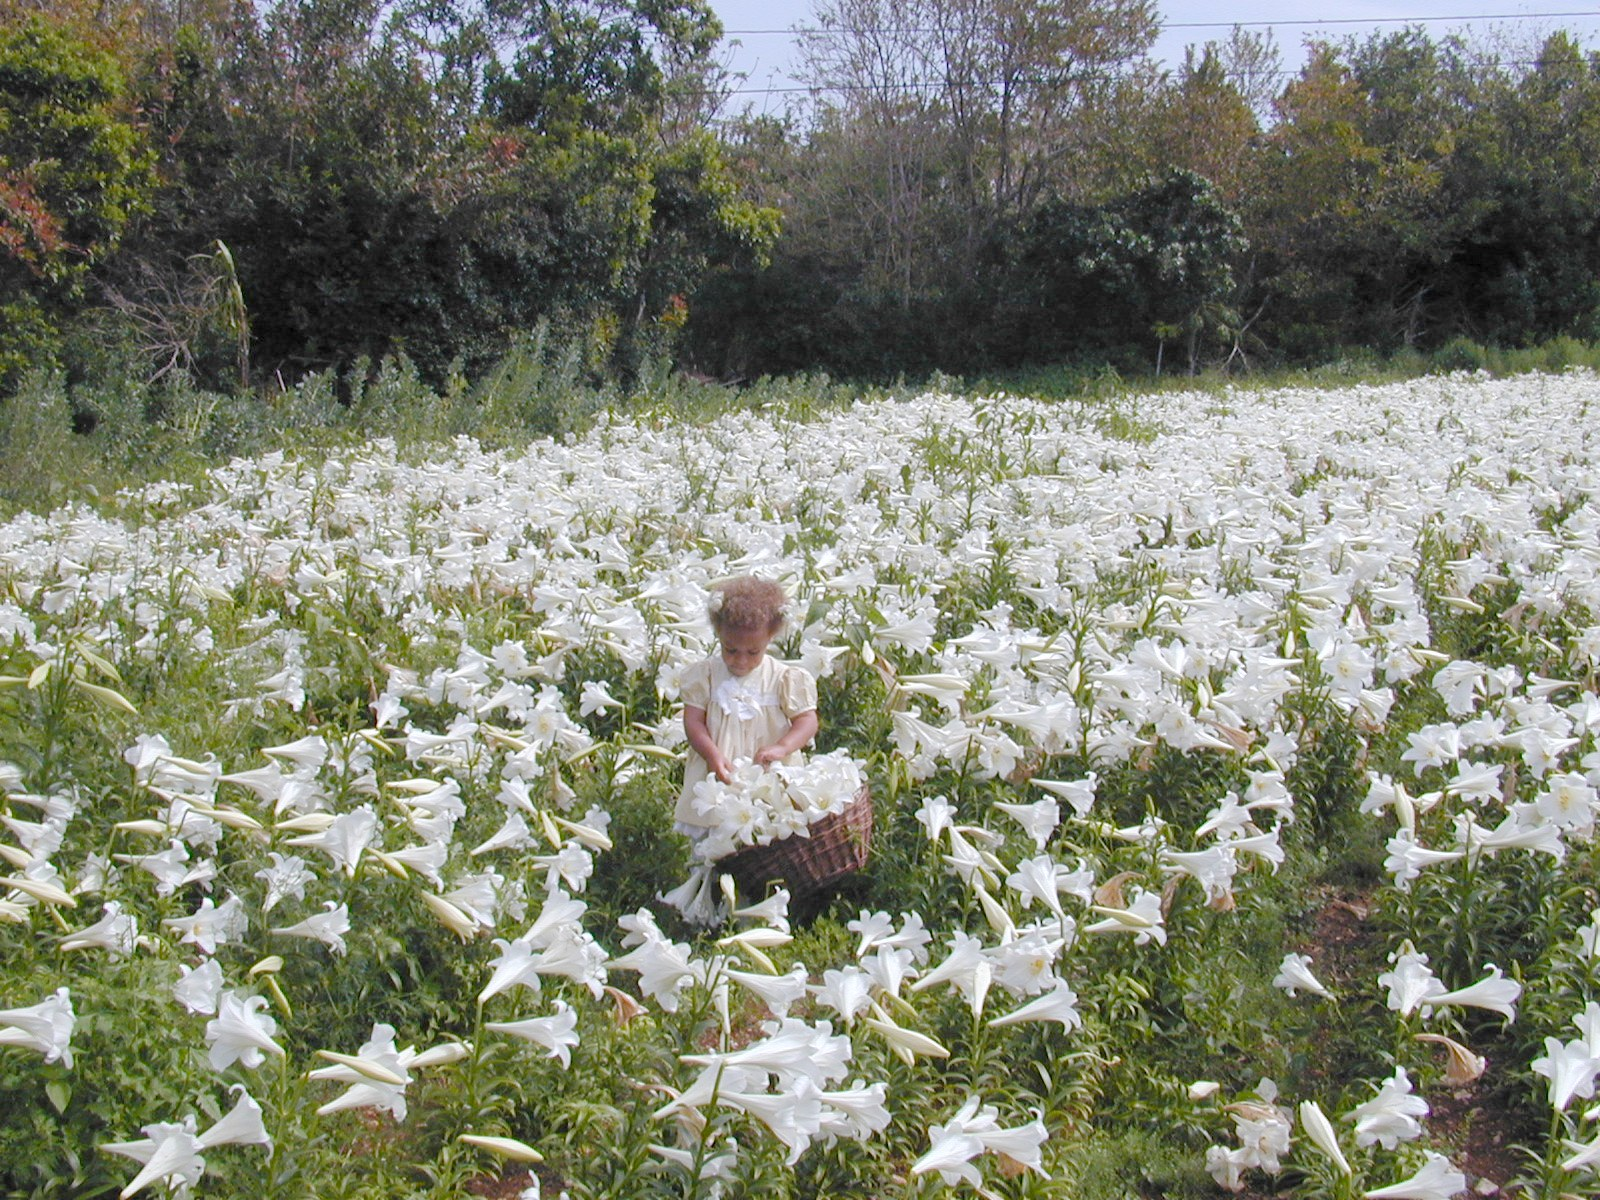 Picking Easter Lillies in Bermuda